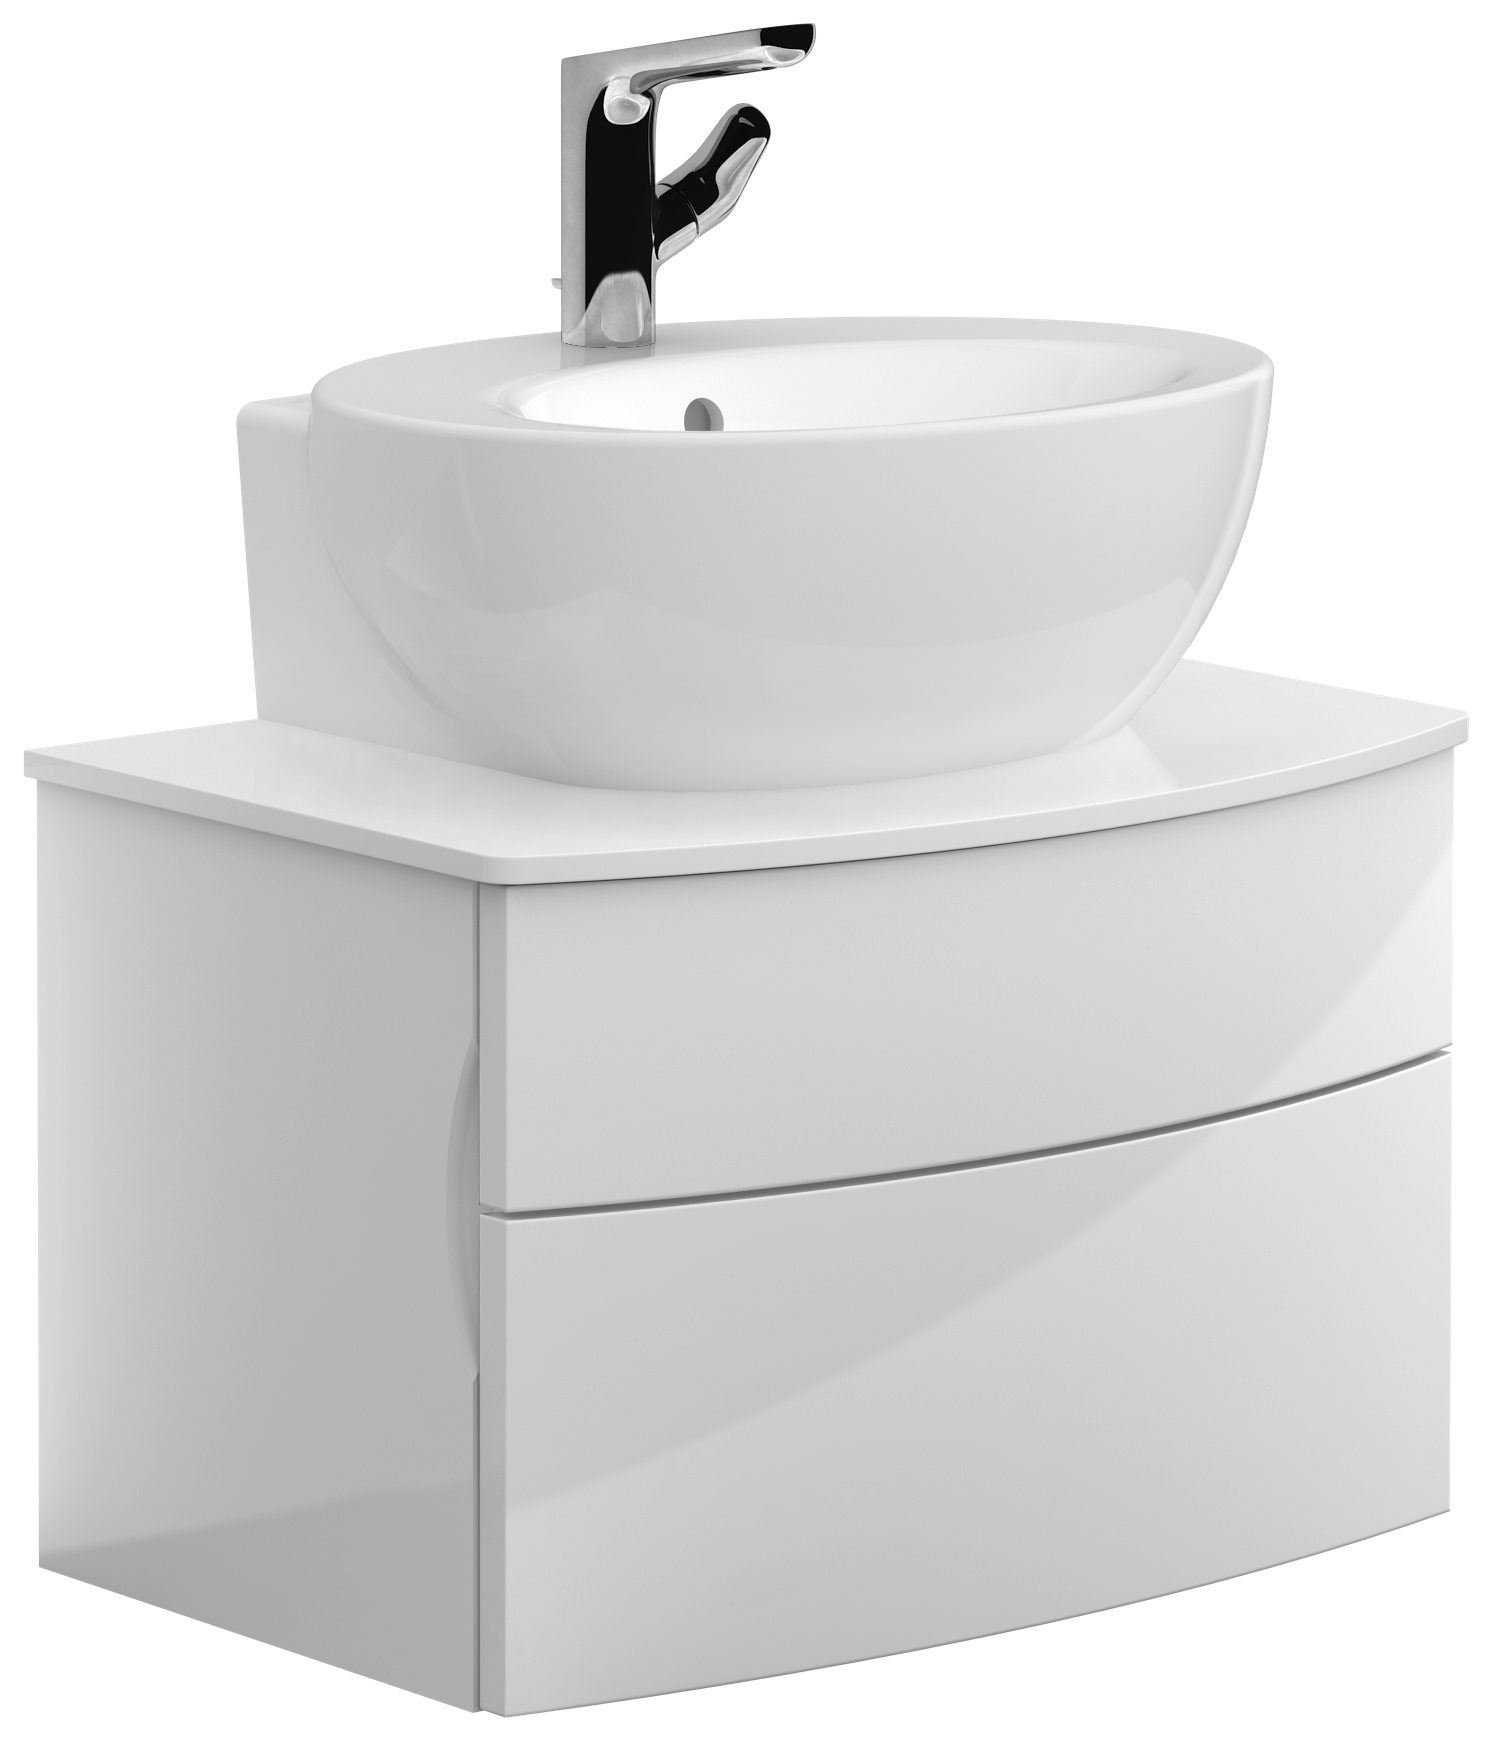 Villeroy and boch bathroom sink - Aveo New Generation Bathroom Furniture Vanity Unit For Washbasin Bathroom Sink Cabinets